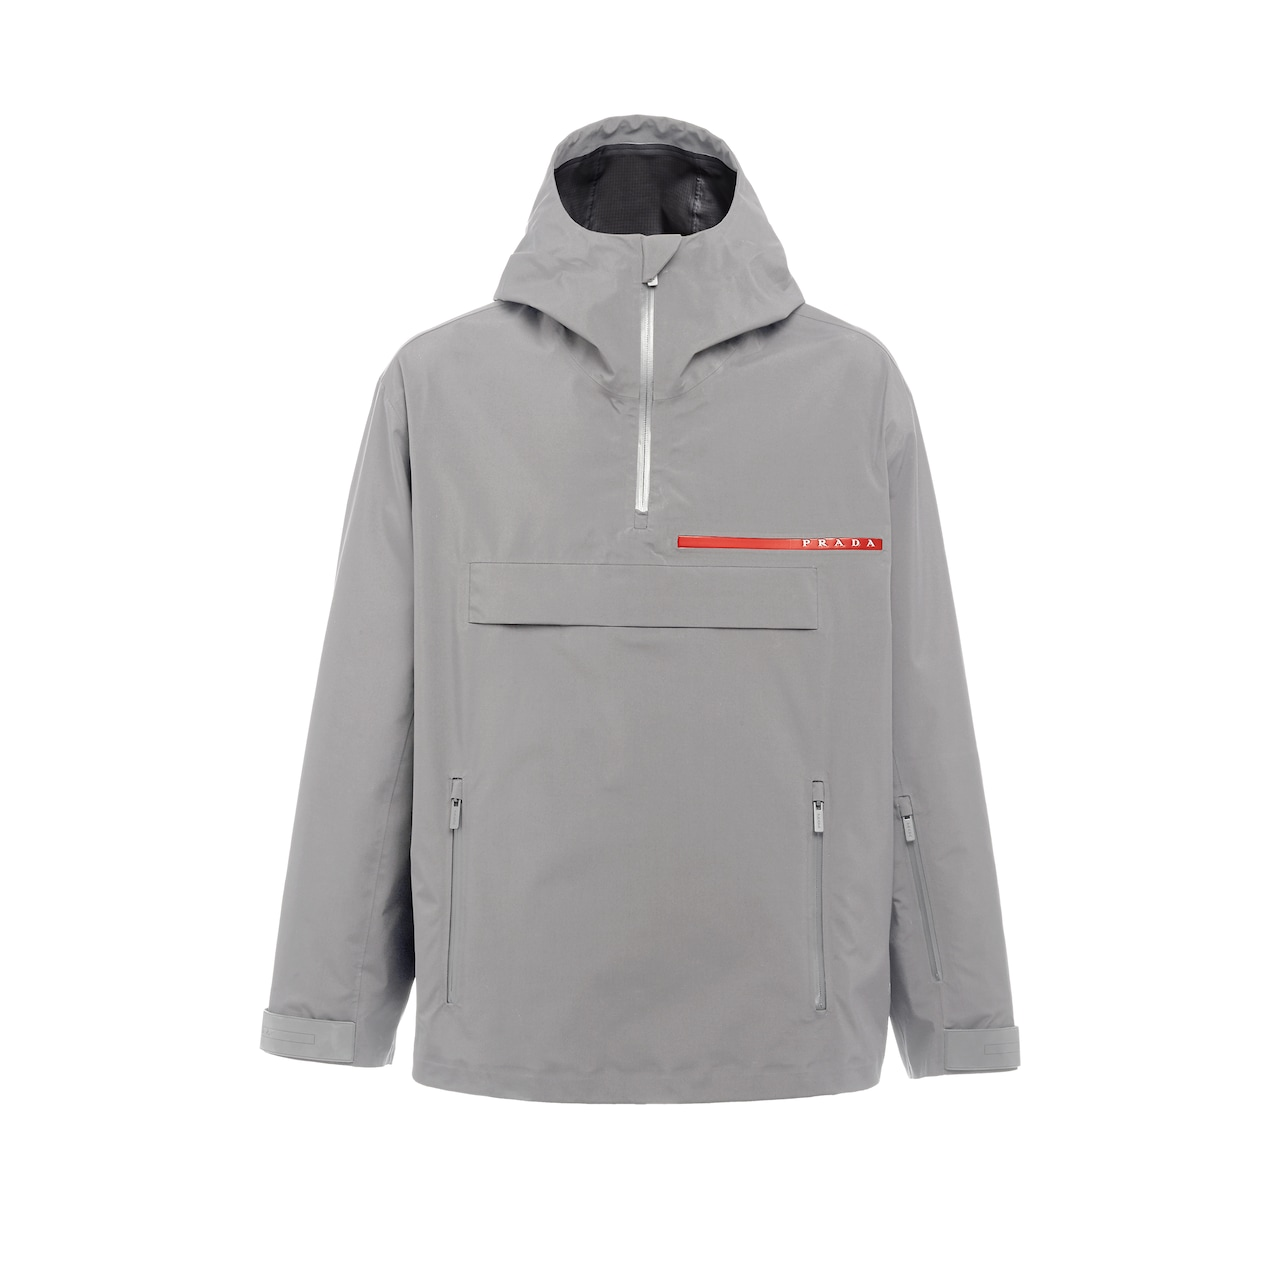 Professional technical fabric jacket